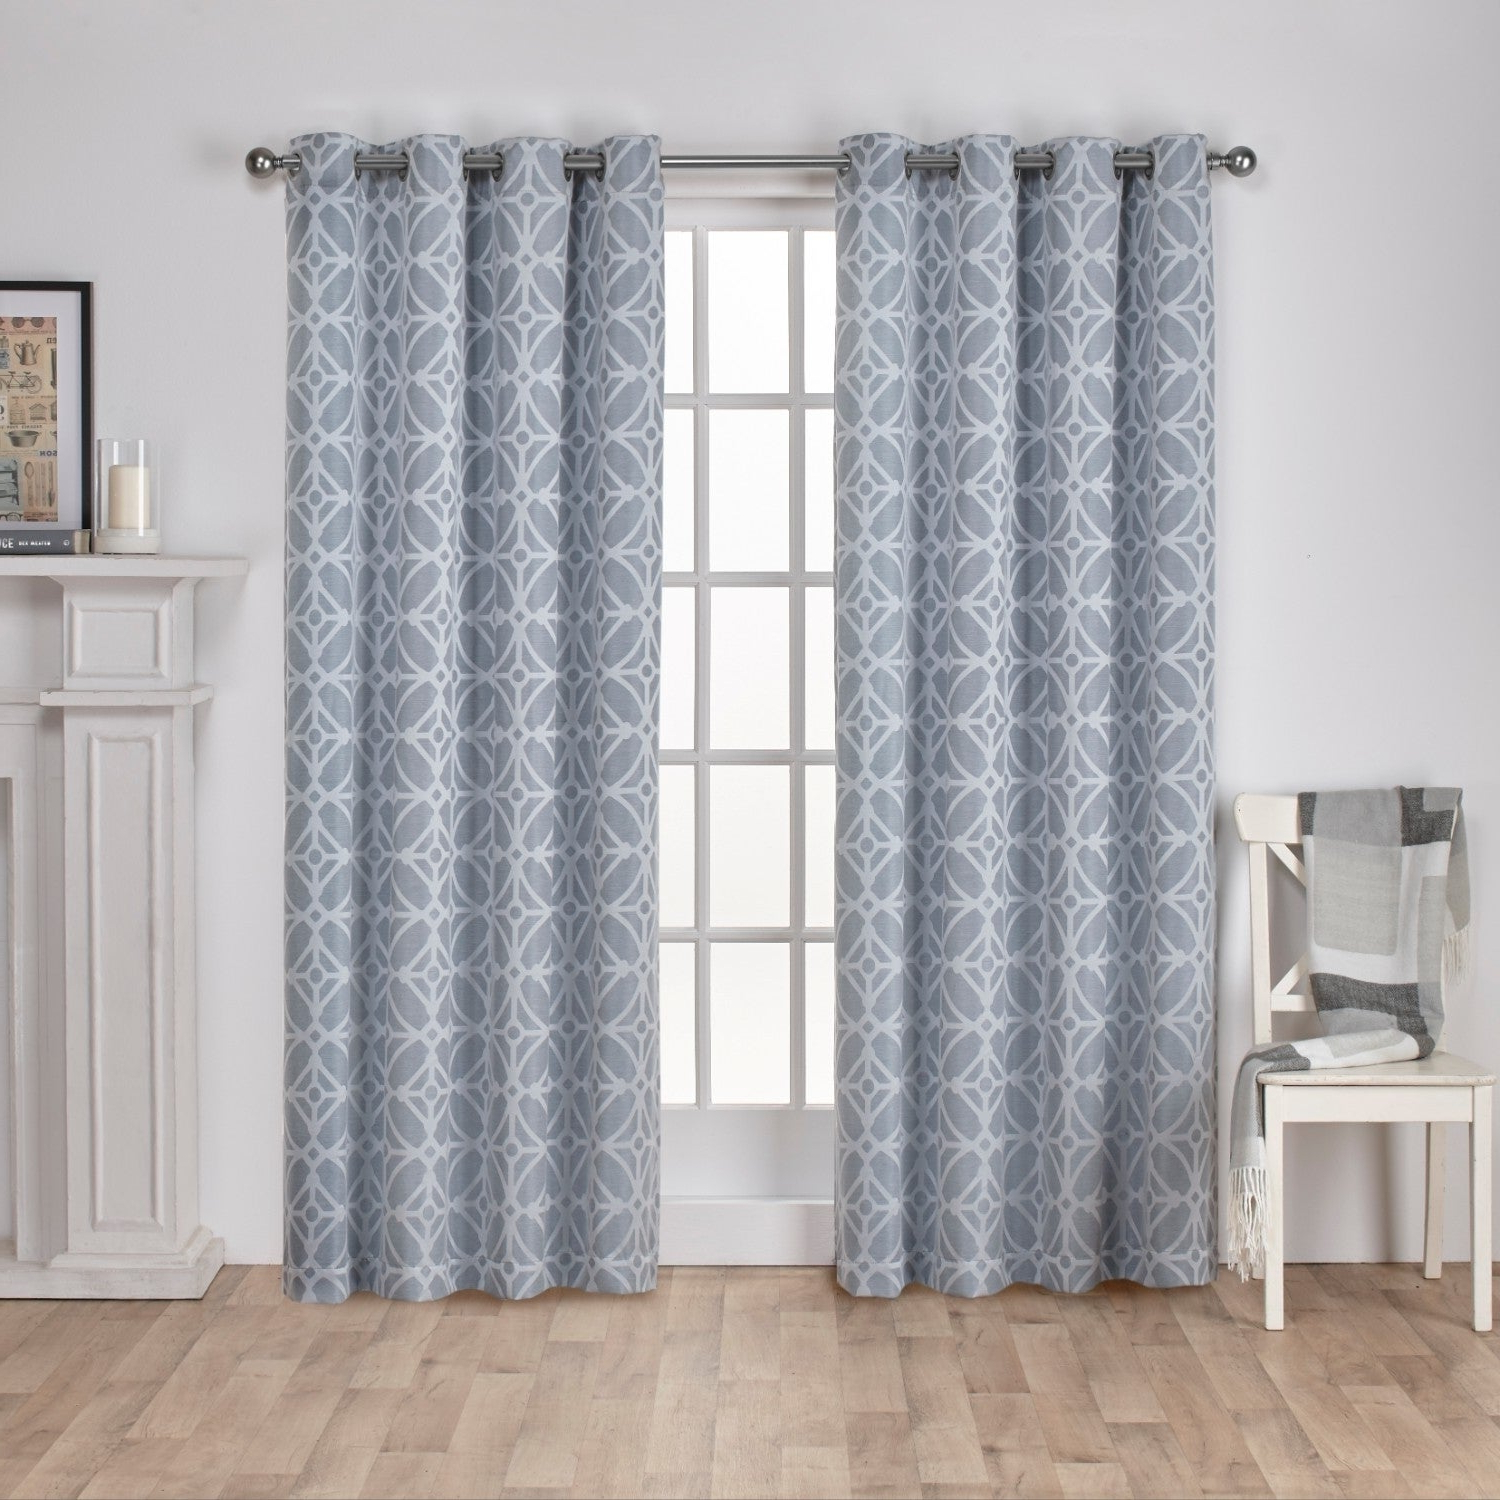 Oakdale Textured Linen Sheer Grommet Top Curtain Panel Pairs Pertaining To Best And Newest Details About Ati Home Cressy Jacquard Grommet Top Curtain Panel Pair (View 13 of 20)